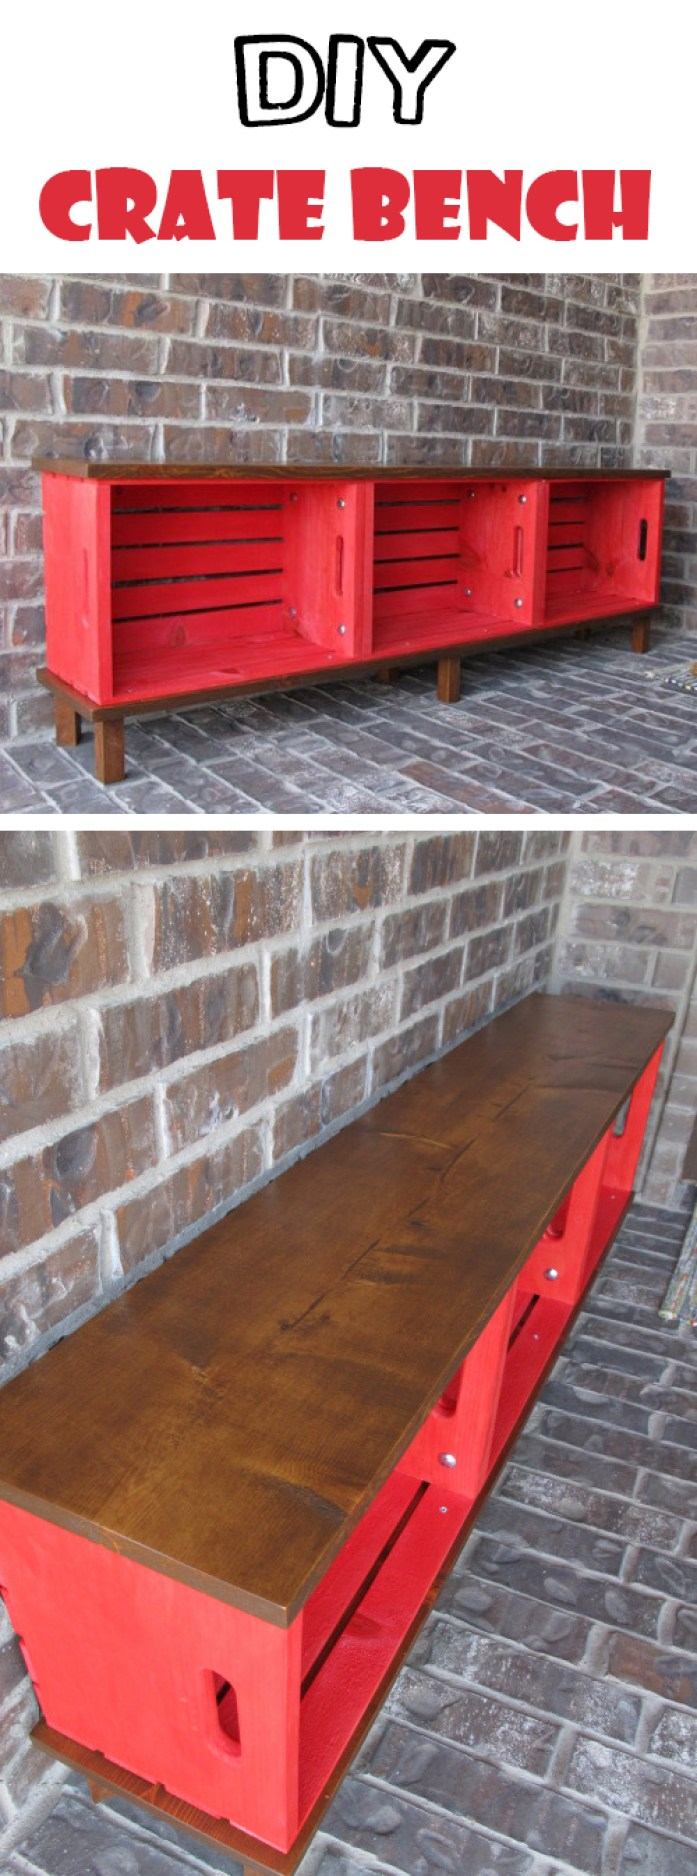 Functional Furniture Crate Bench Project